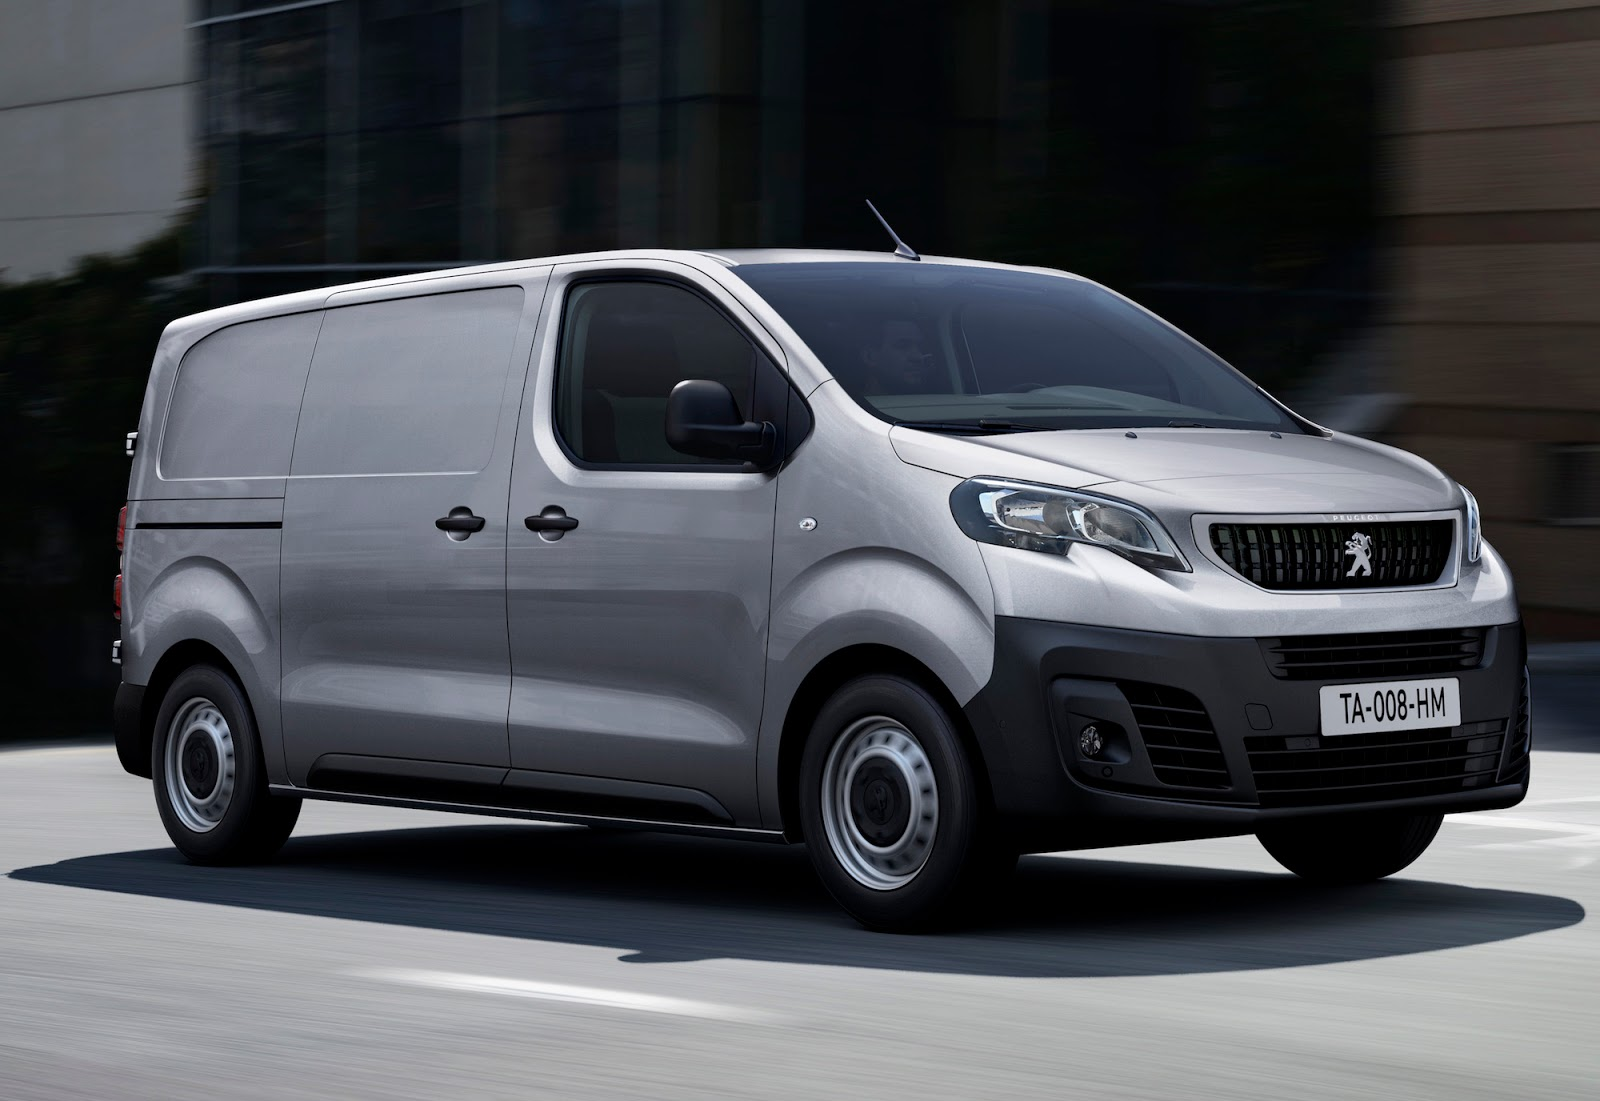 8870ea97c3 Peugeot has launched the new Expert van in Ireland at a retail price  starting at €21